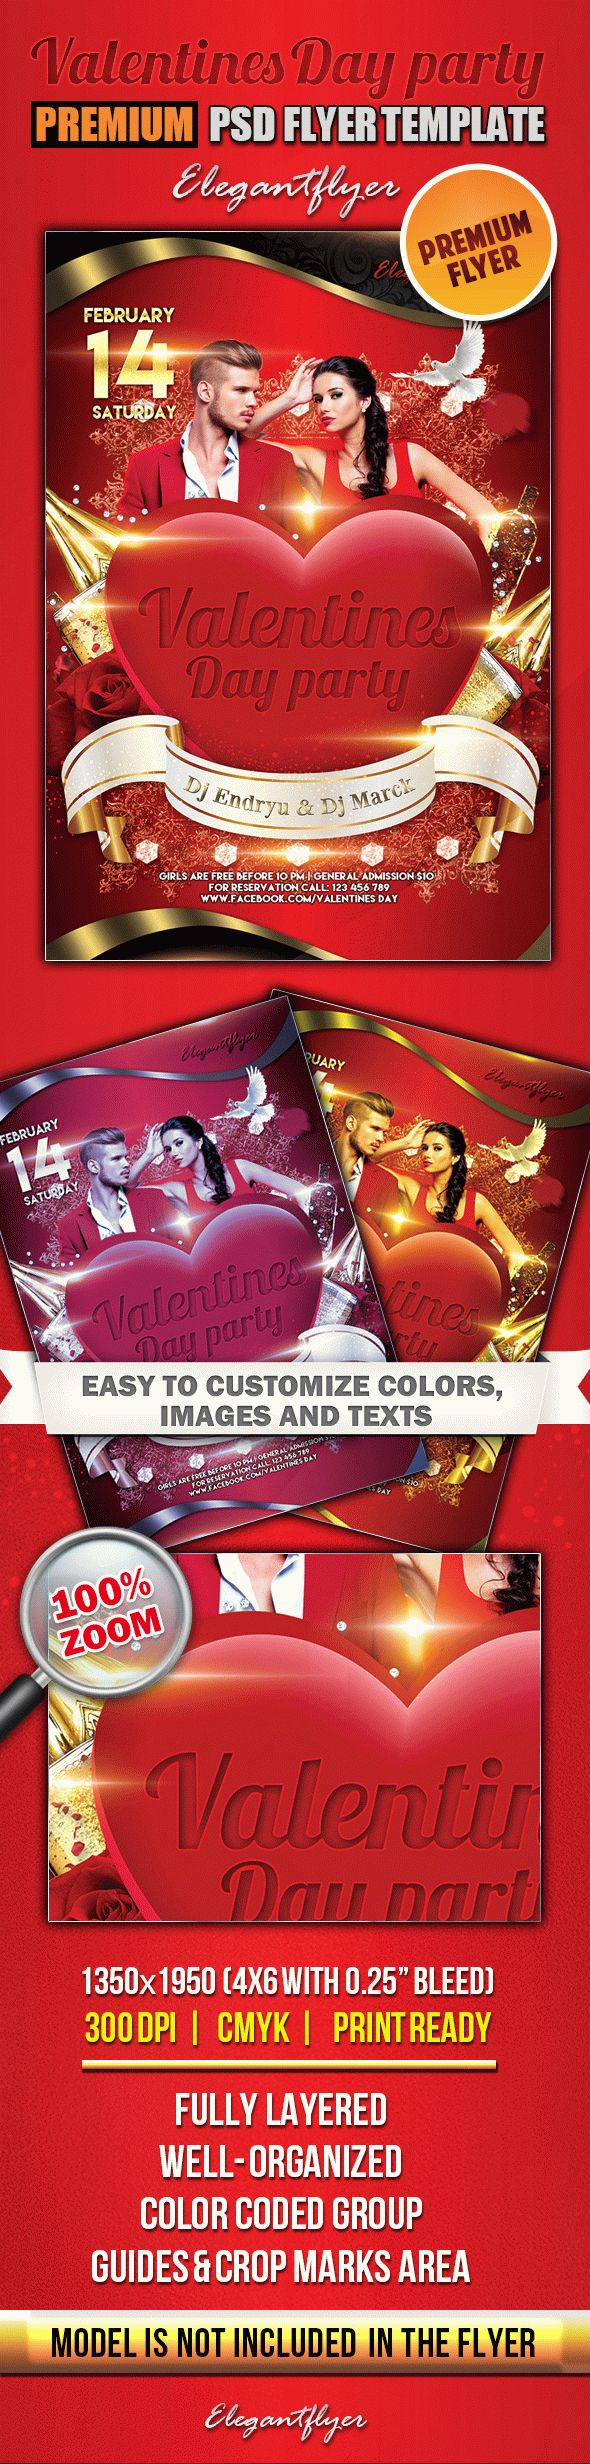 Valentines Day party 2 – Premium Club flyer PSD Template